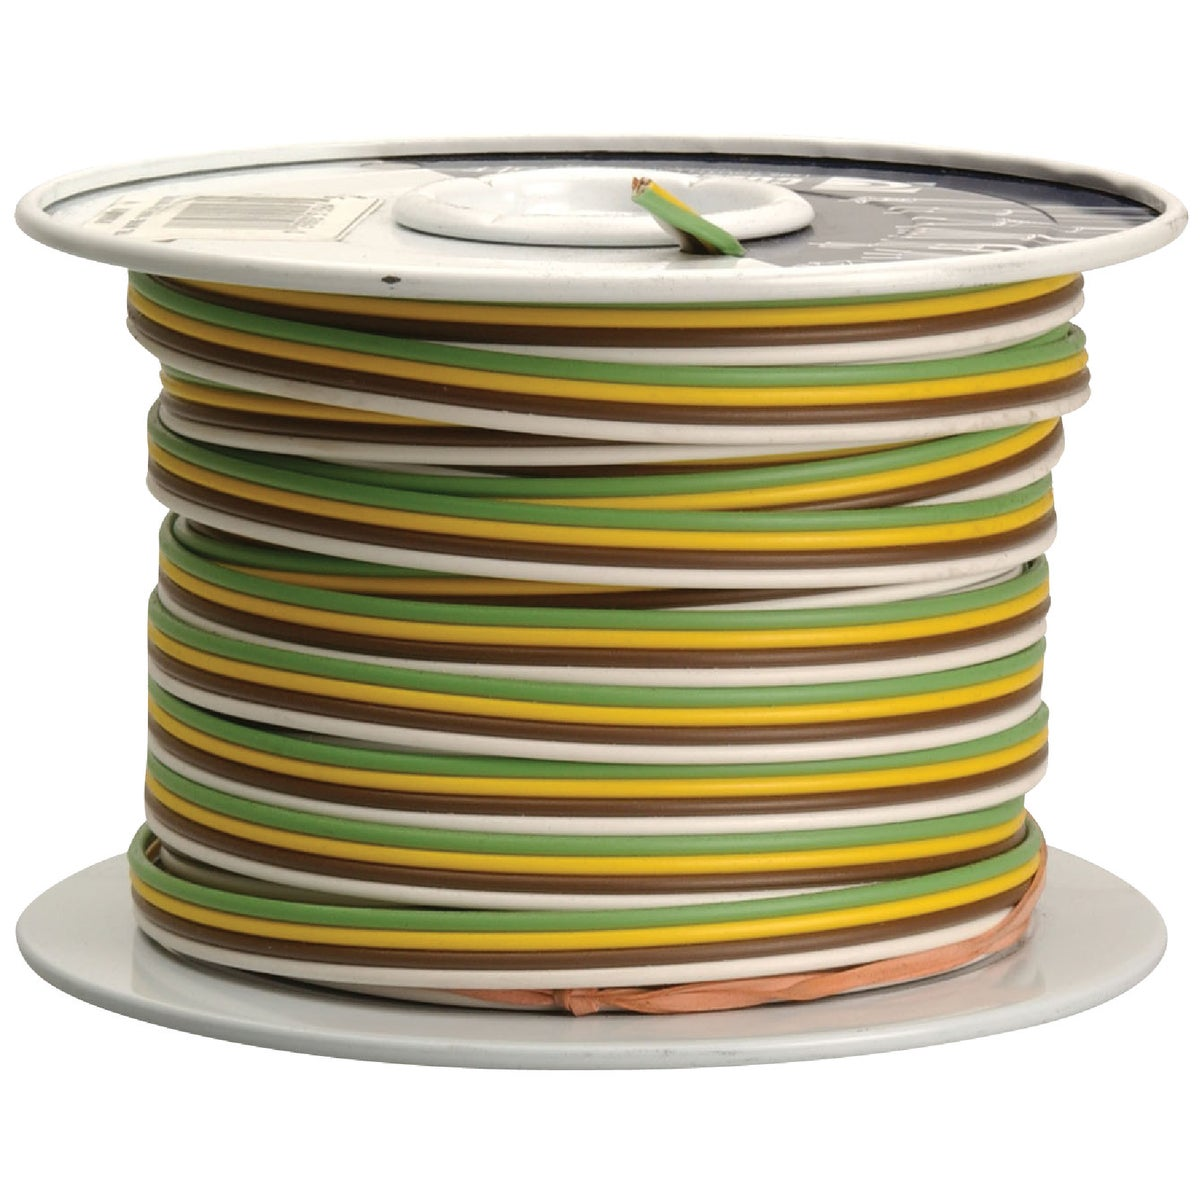 16/4 BONDED PRIMARY WIRE - 51564-03-18 by Woods Wire Coleman